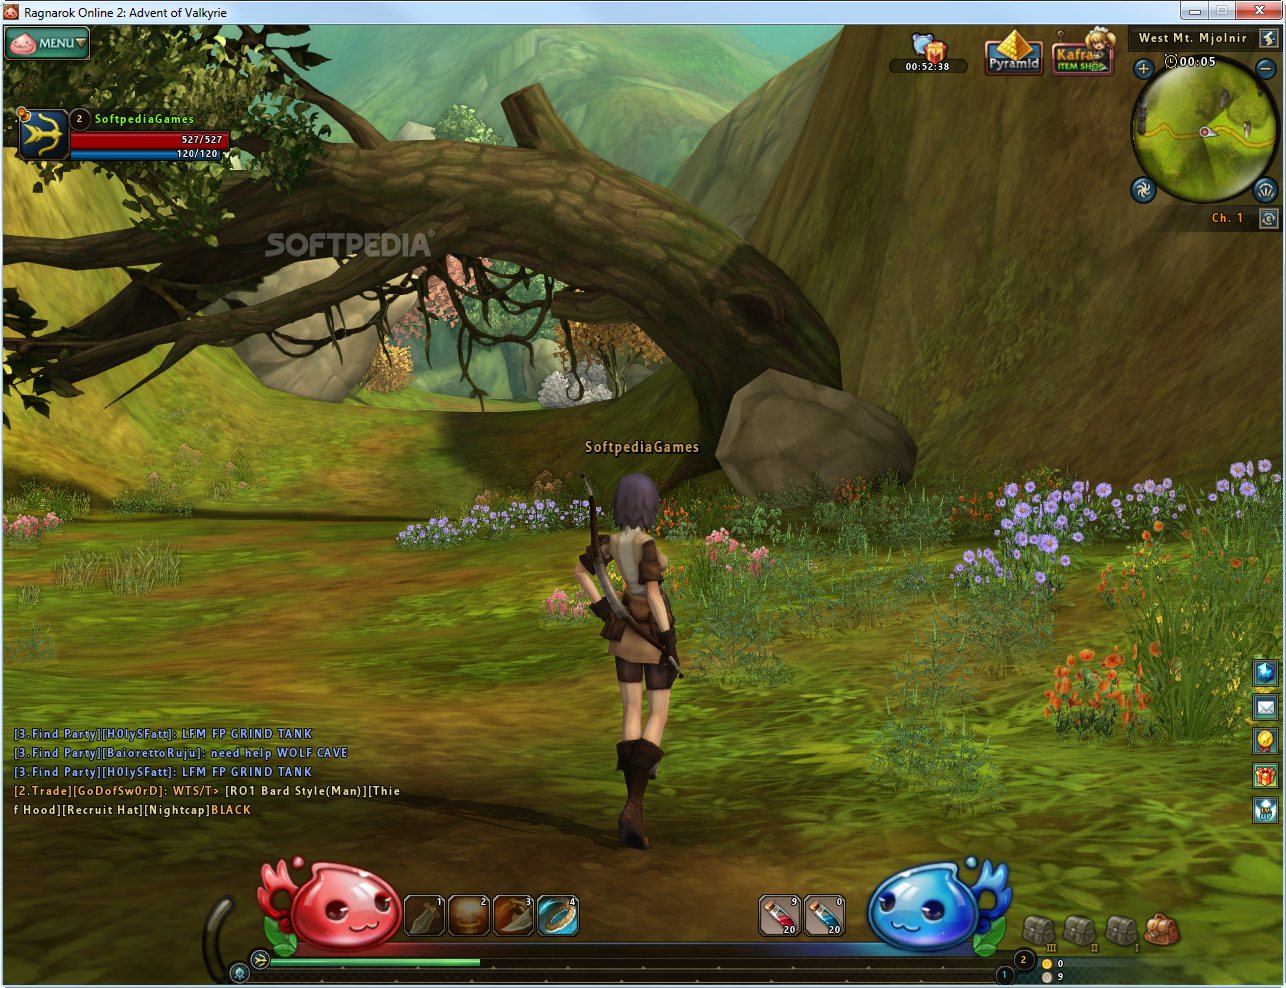 Ragnarok Online 2: Advent of Valkyrie Download